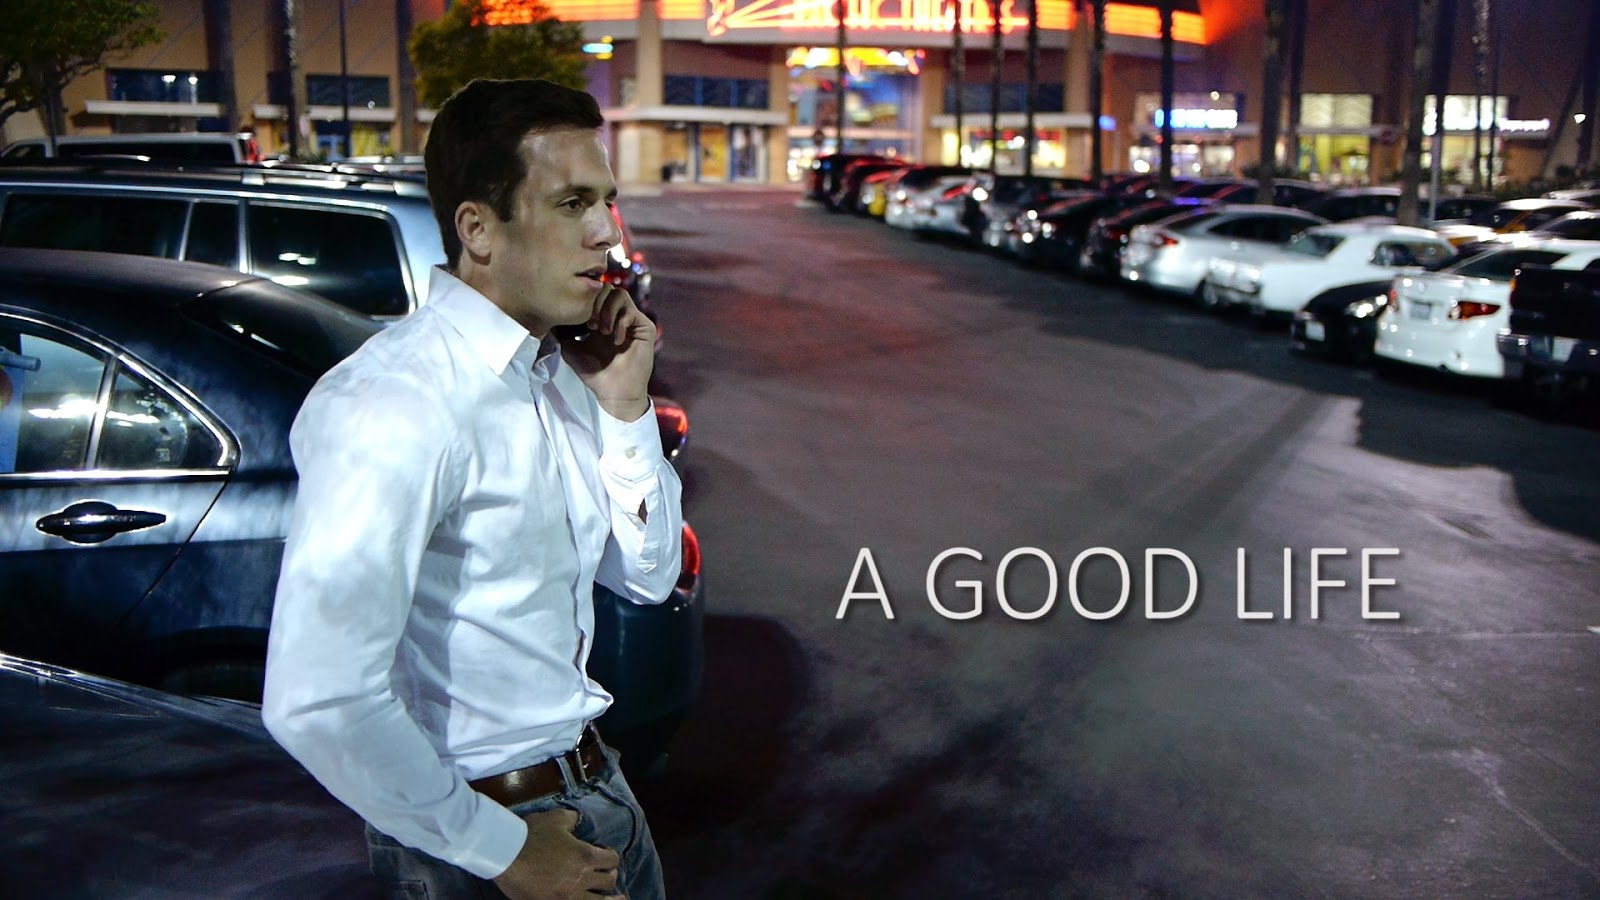 http://www.indiegogo.com/projects/a-good-life-tv-pilot-episode